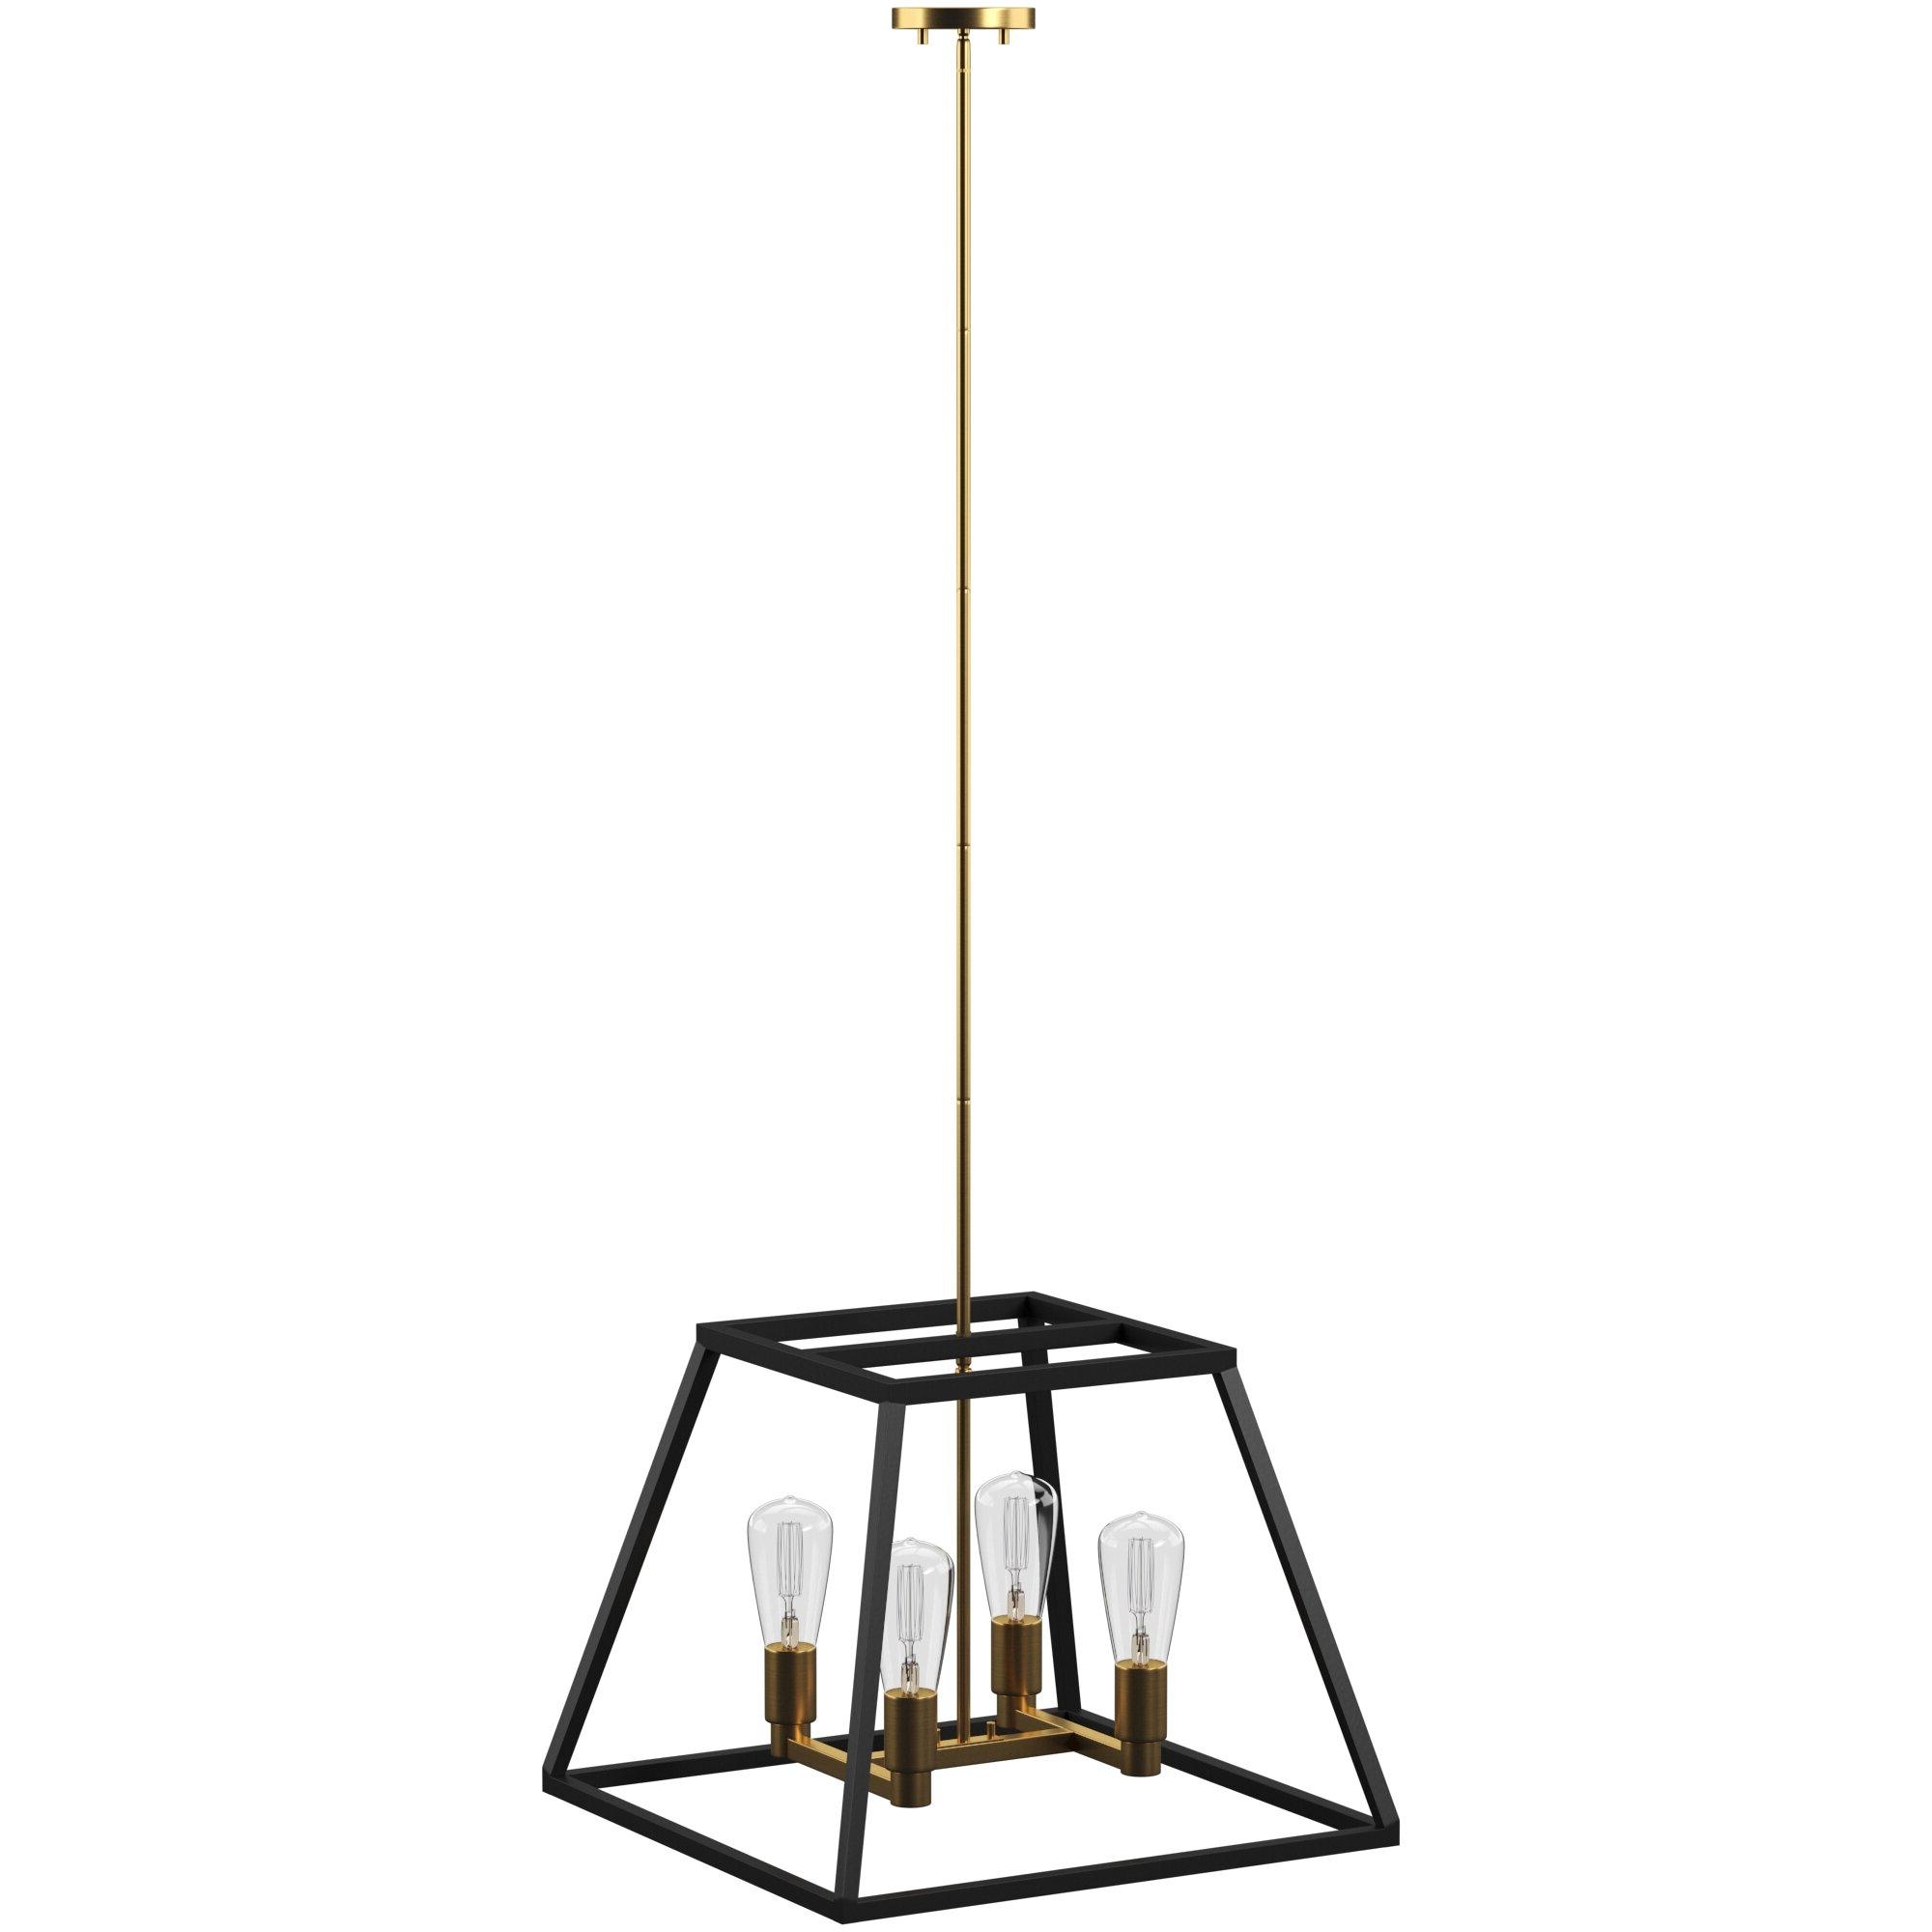 Allmodern Pertaining To Recent Hendry 4 Light Globe Chandeliers (Gallery 20 of 20)